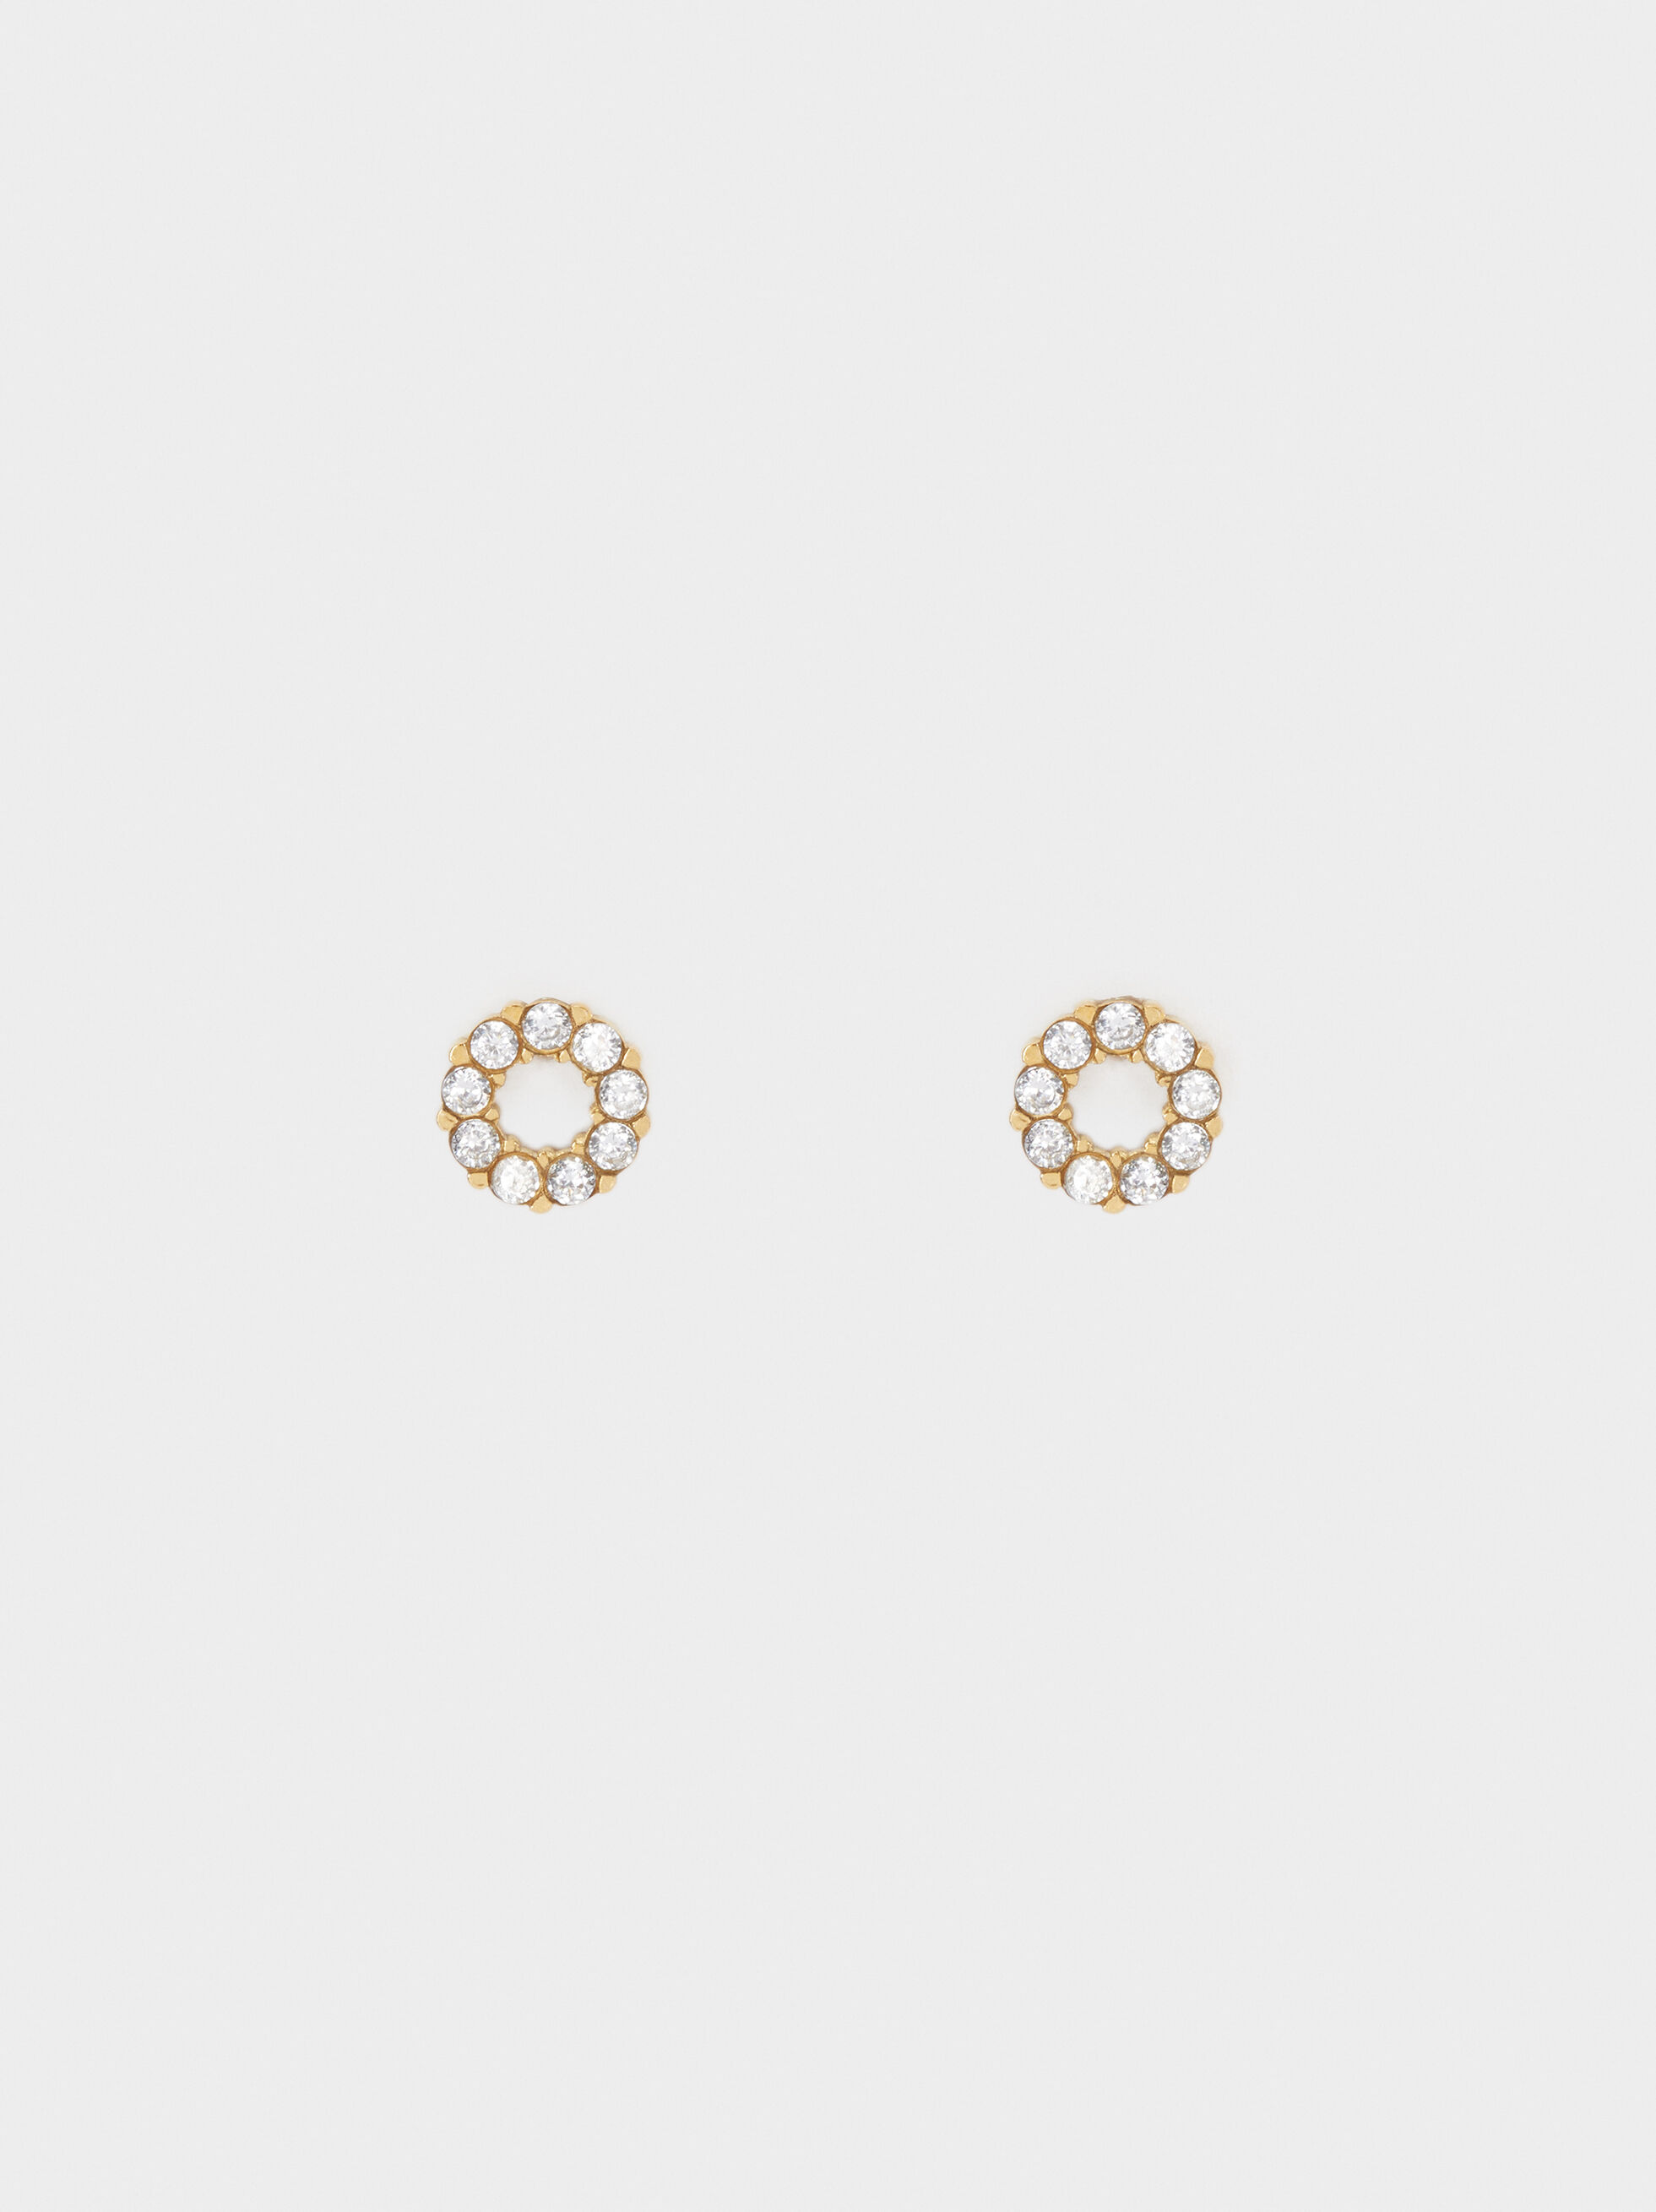 Short Gold Stainless Steel Earrings With Stones, , hi-res